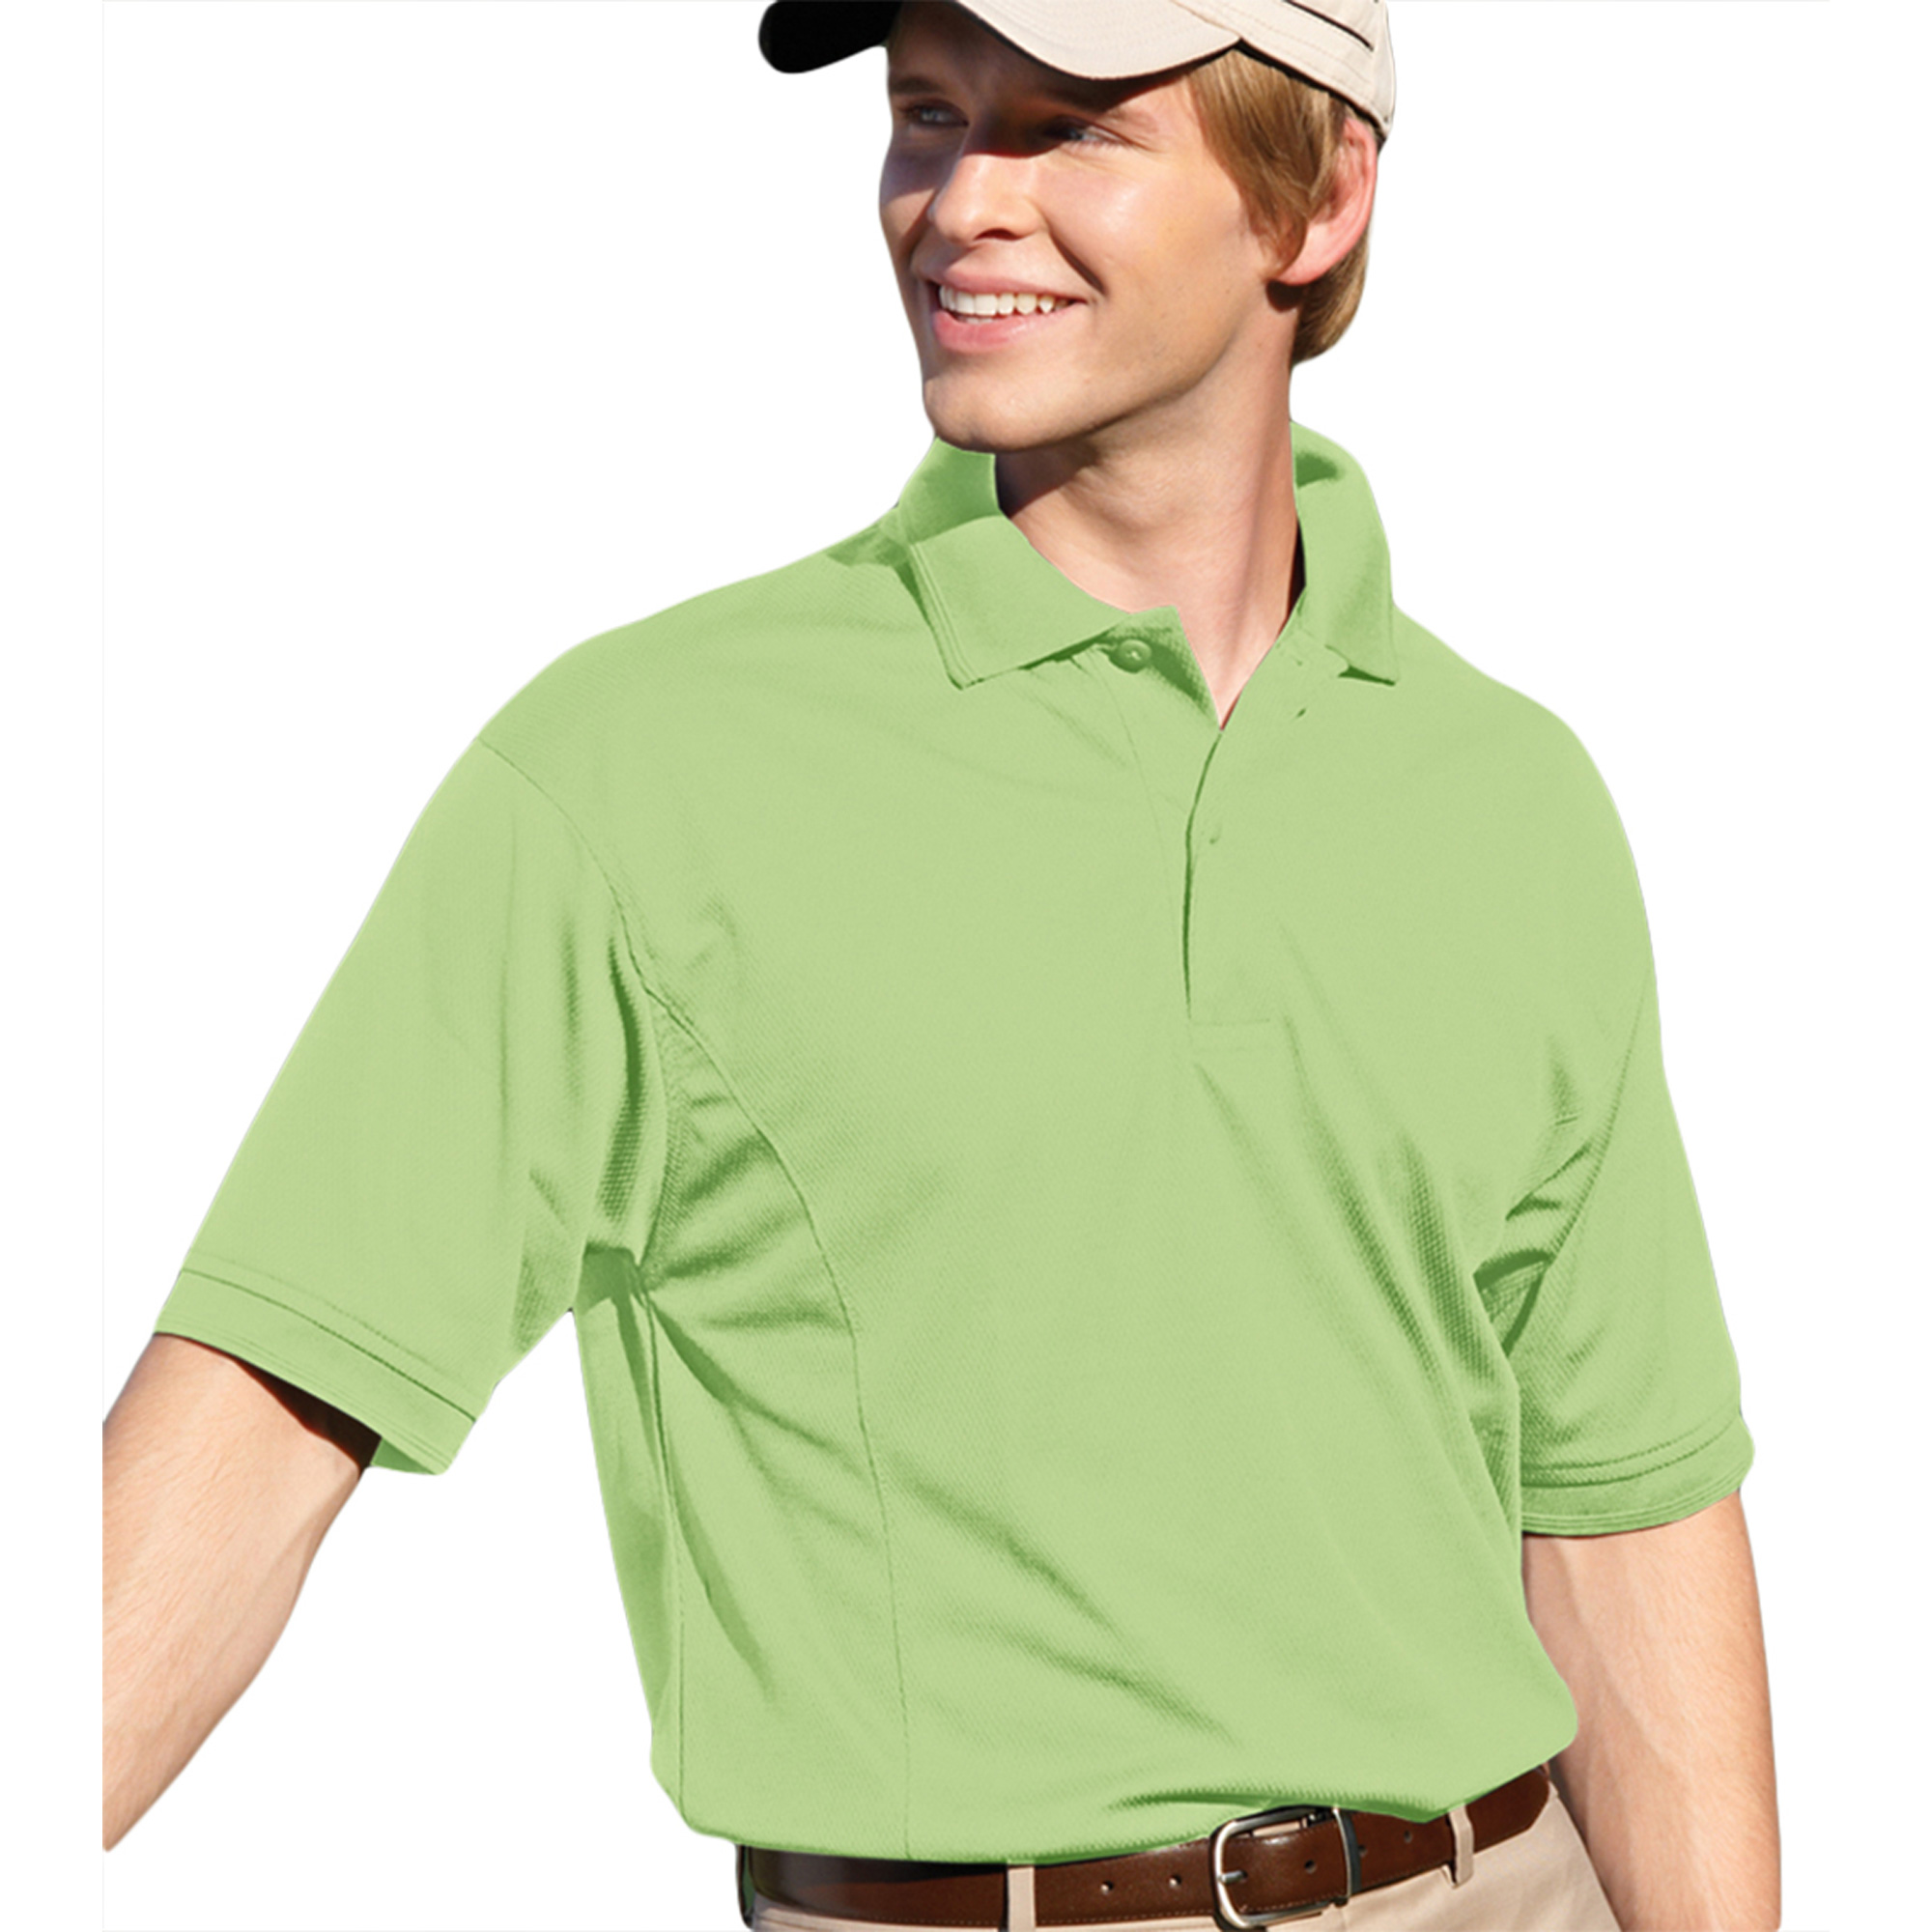 00820599180705 MENS PERFORMANCE GOLF SHIRT 2800 APPLE XL